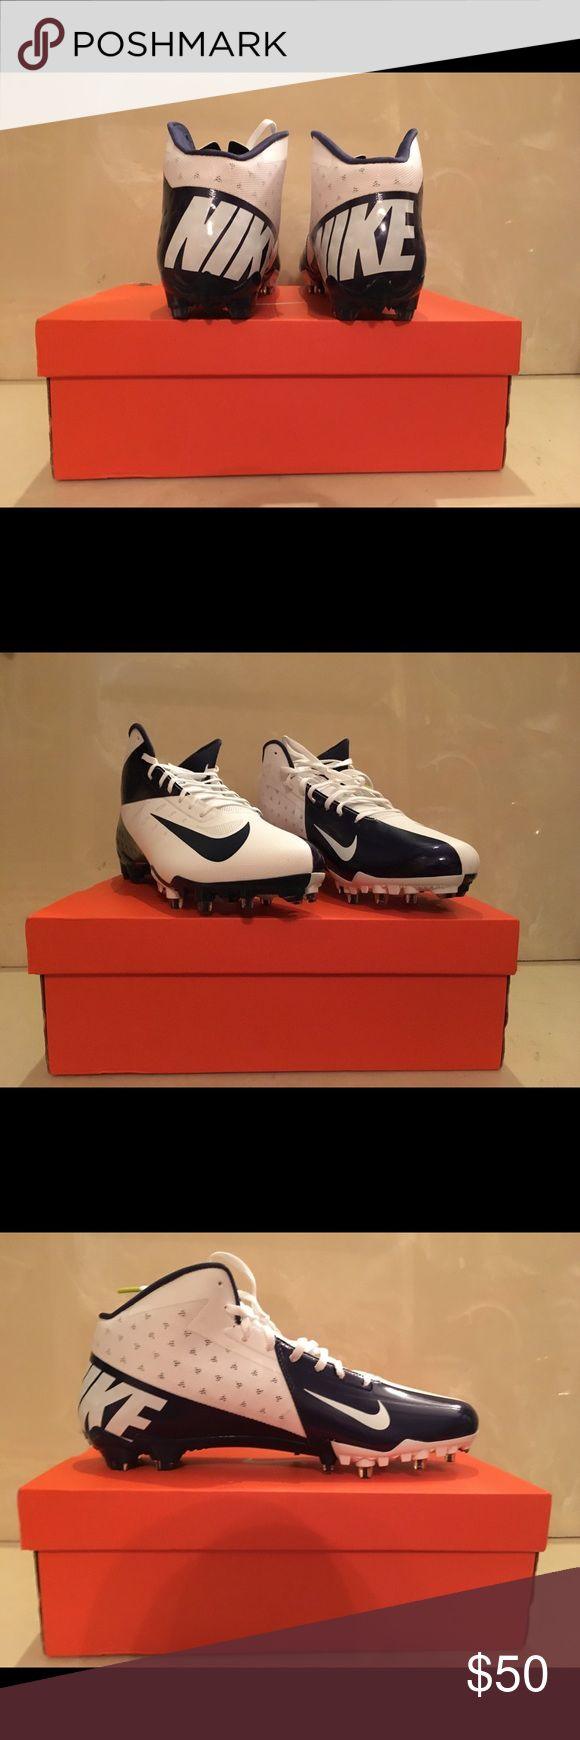 Size 13.5 Nike Vapor Talon Elite Football Cleats The cleats are narrow. The condition of the cleats are new. They are size 13.5 and are blue and white. Nike Shoes Athletic Shoes